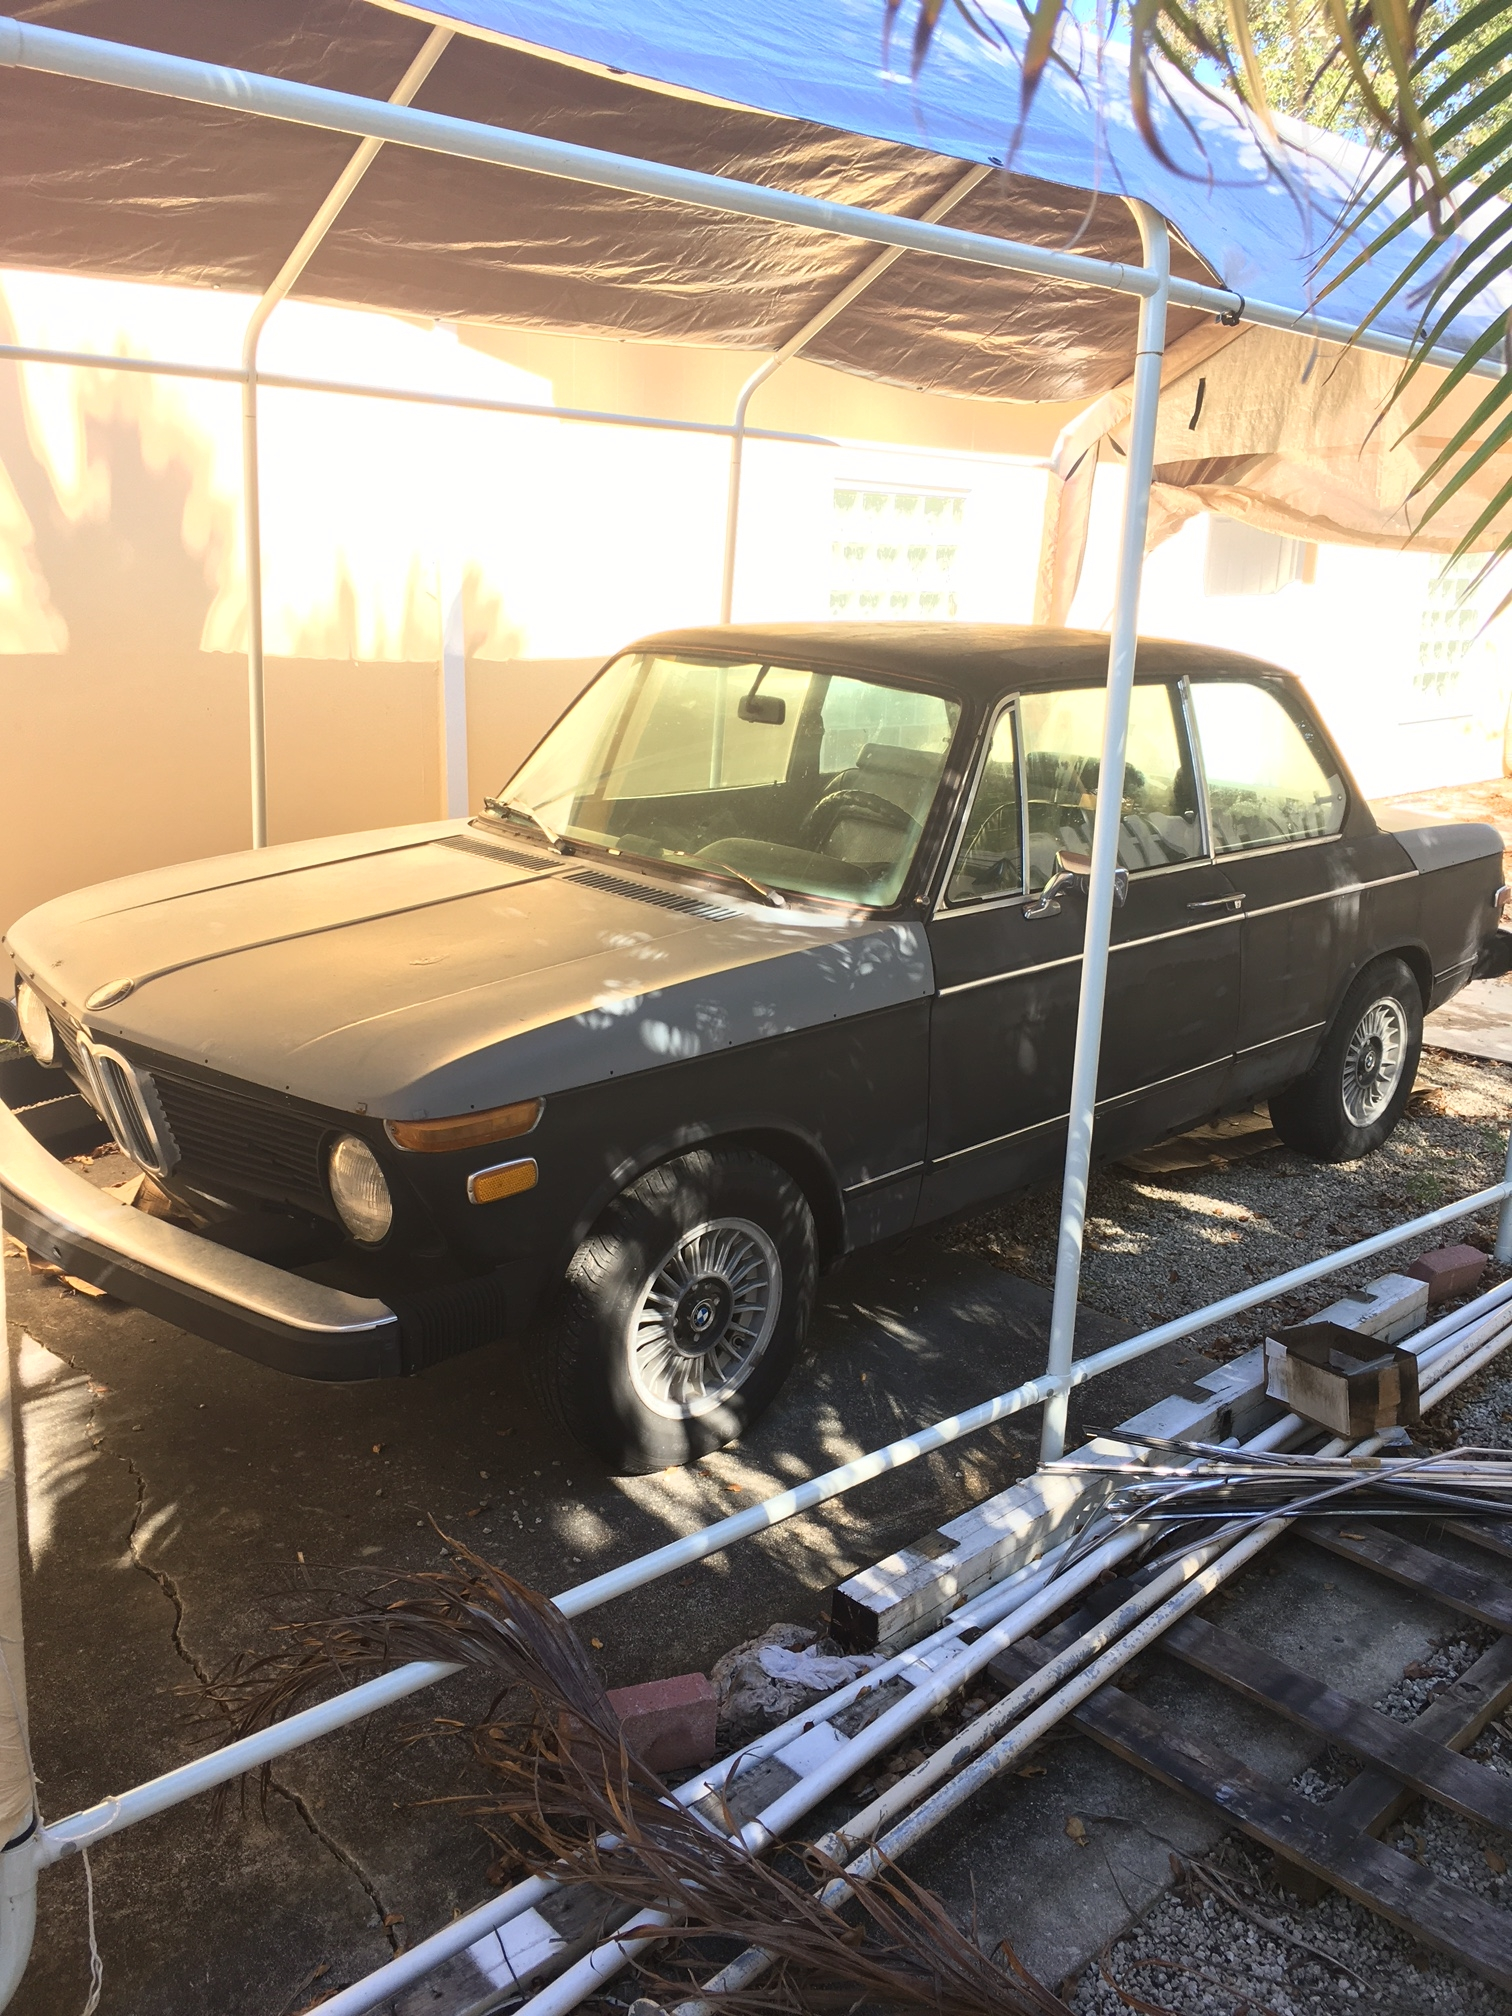 1975 BMW 2002 FOR SALE-FLORIDA-$3500 OBO - Cars for Sale - BMW 2002 FAQ